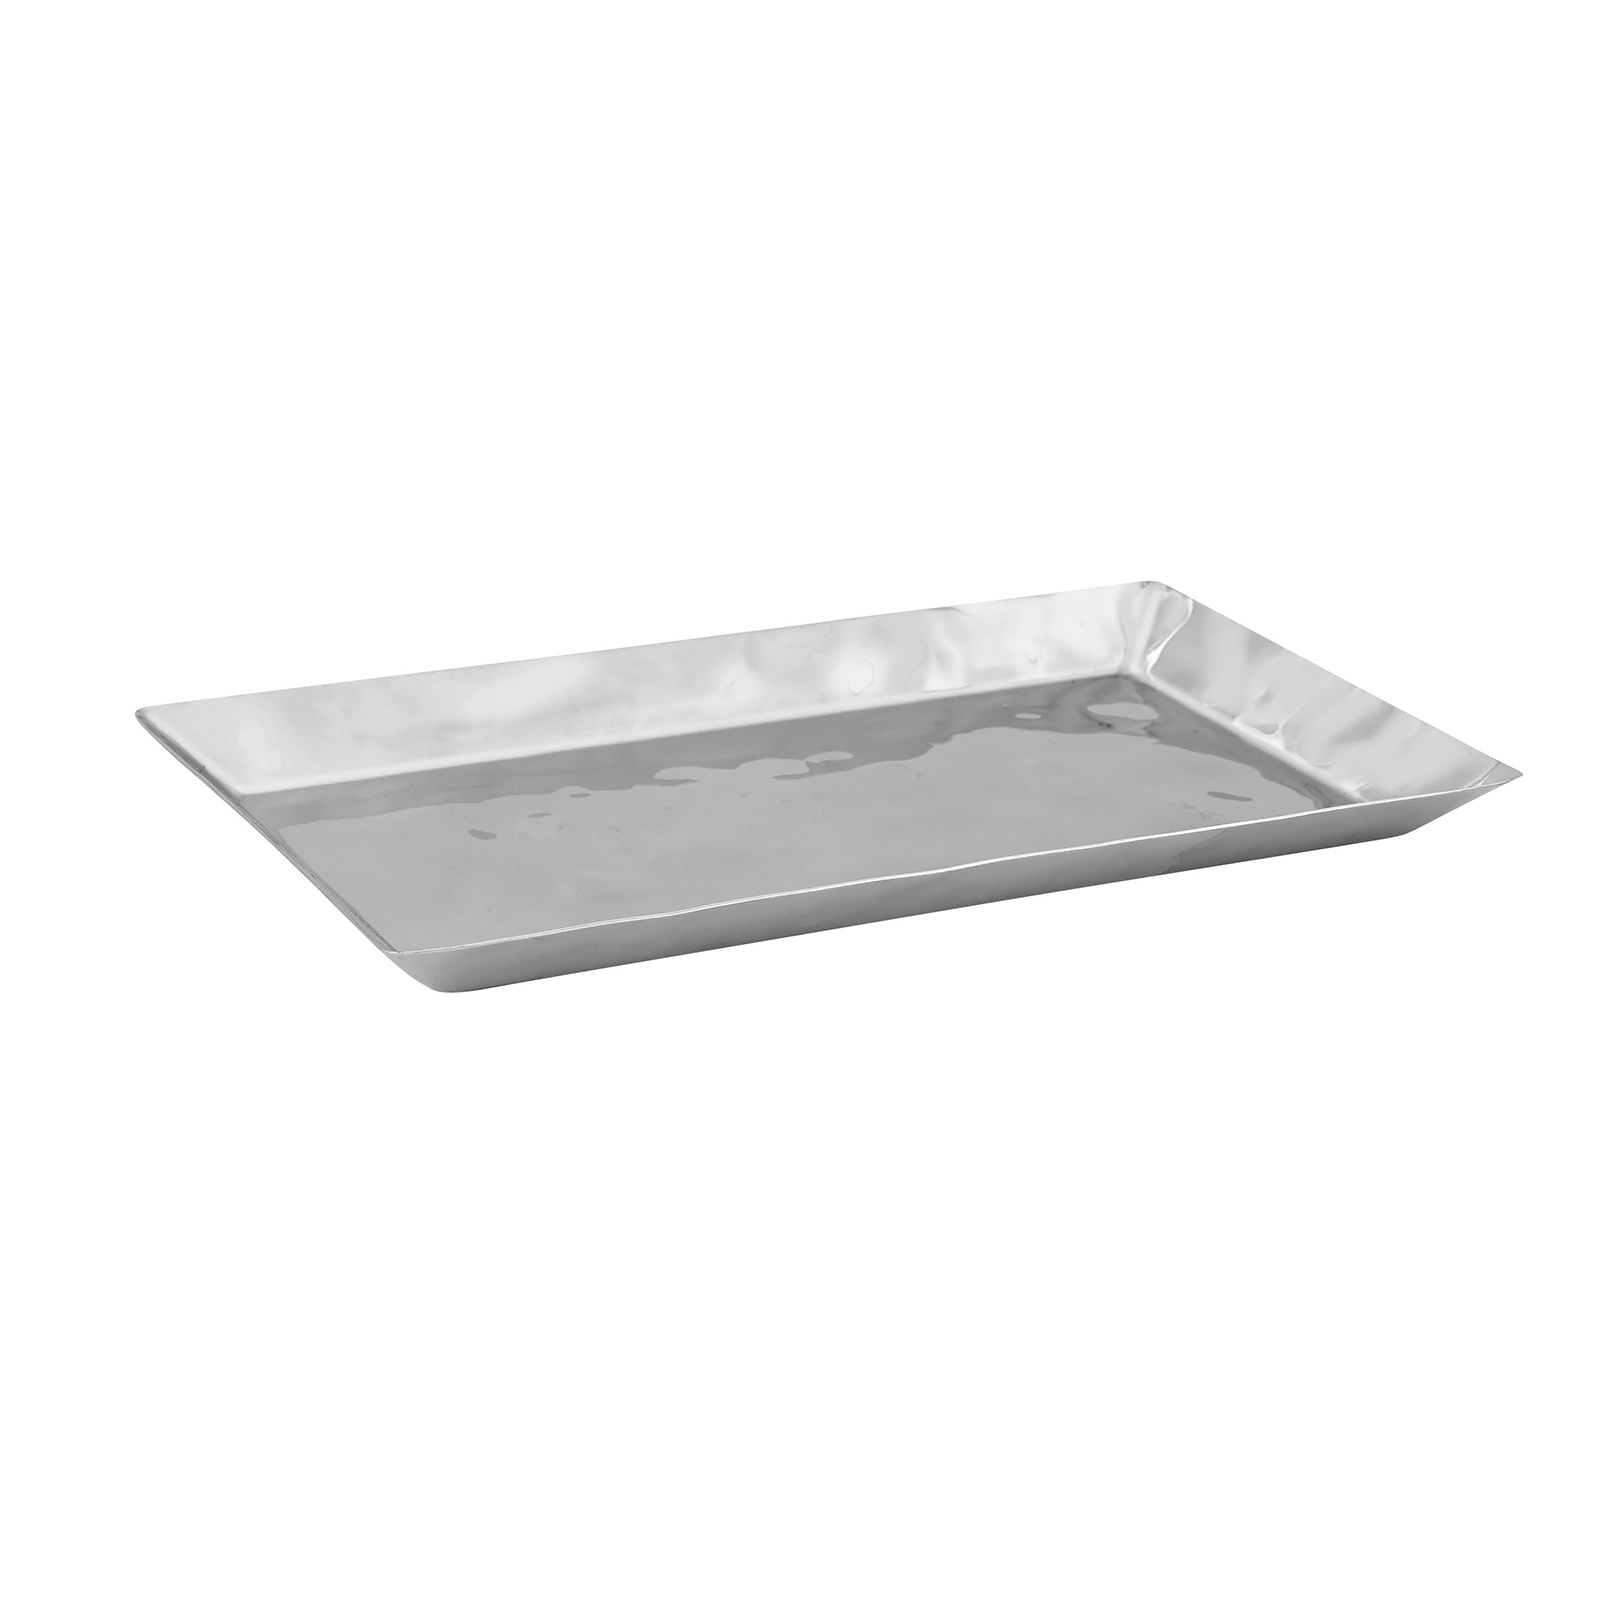 Winco HPO-15 display tray, market / bakery